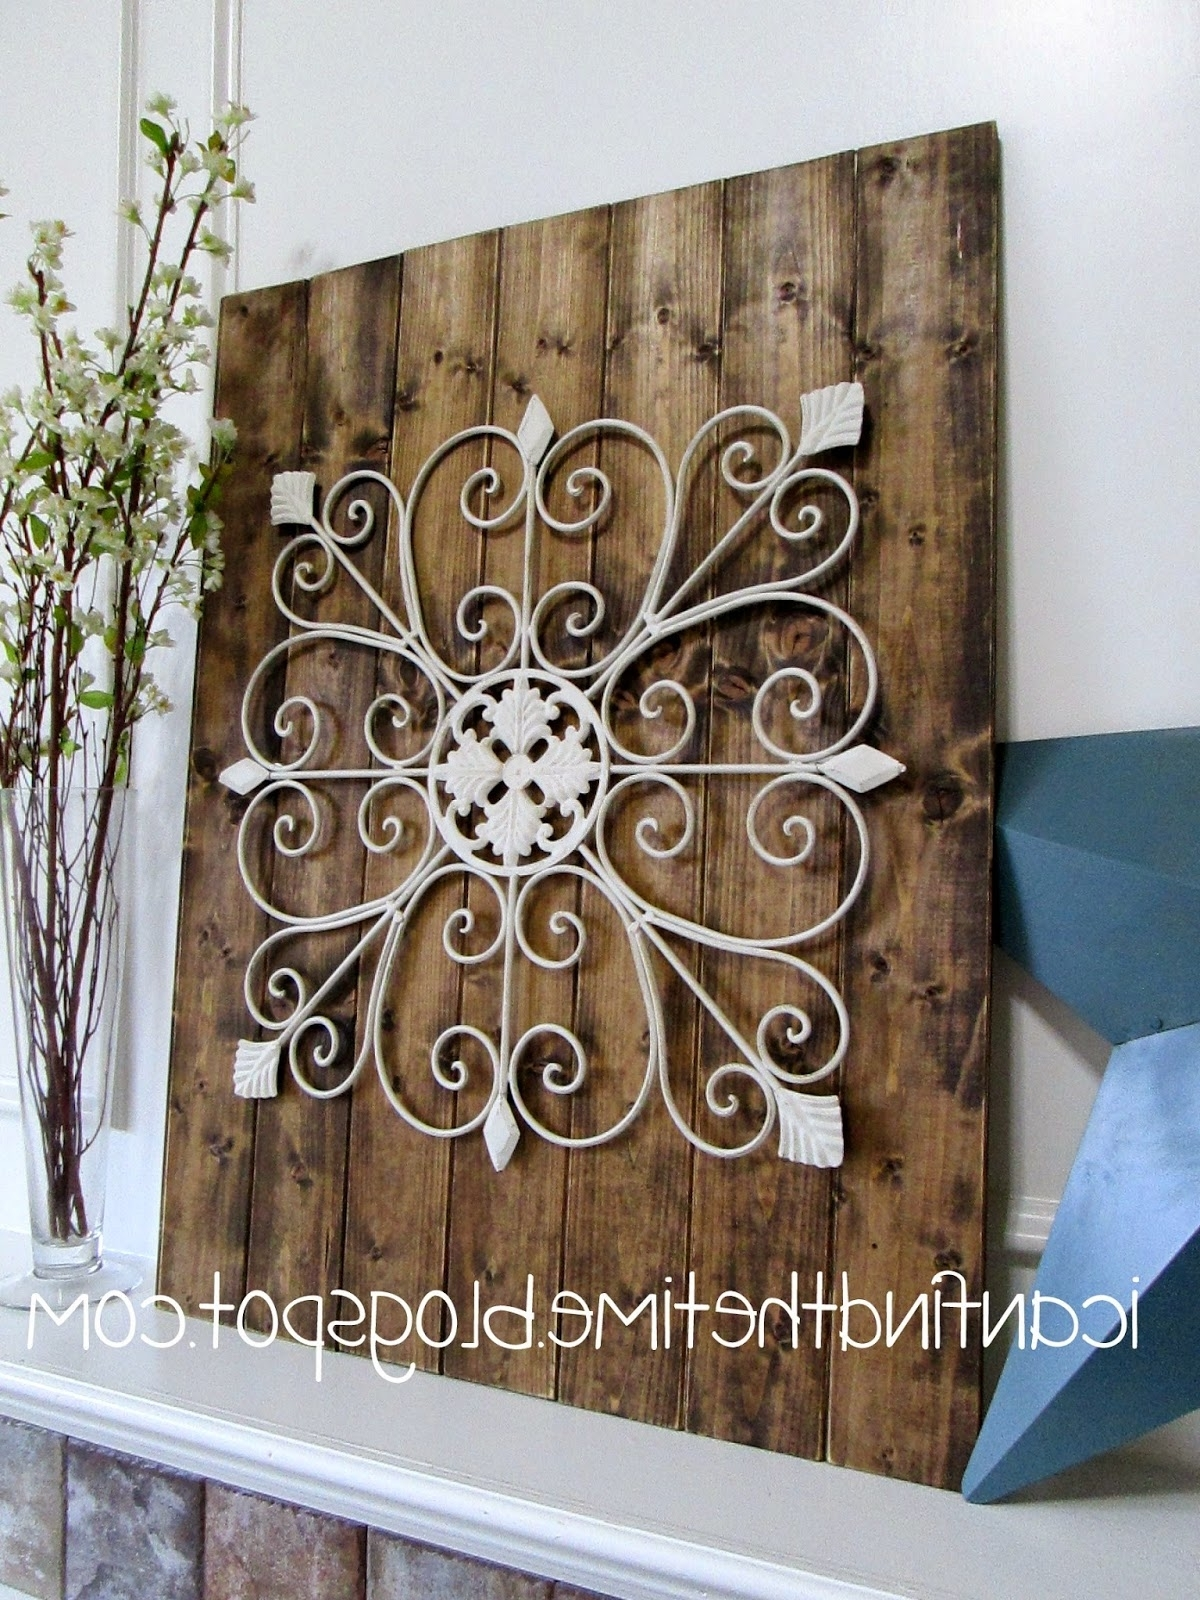 Preferred Wood And Metal Wall Art intended for Wood And Metal Wall Art